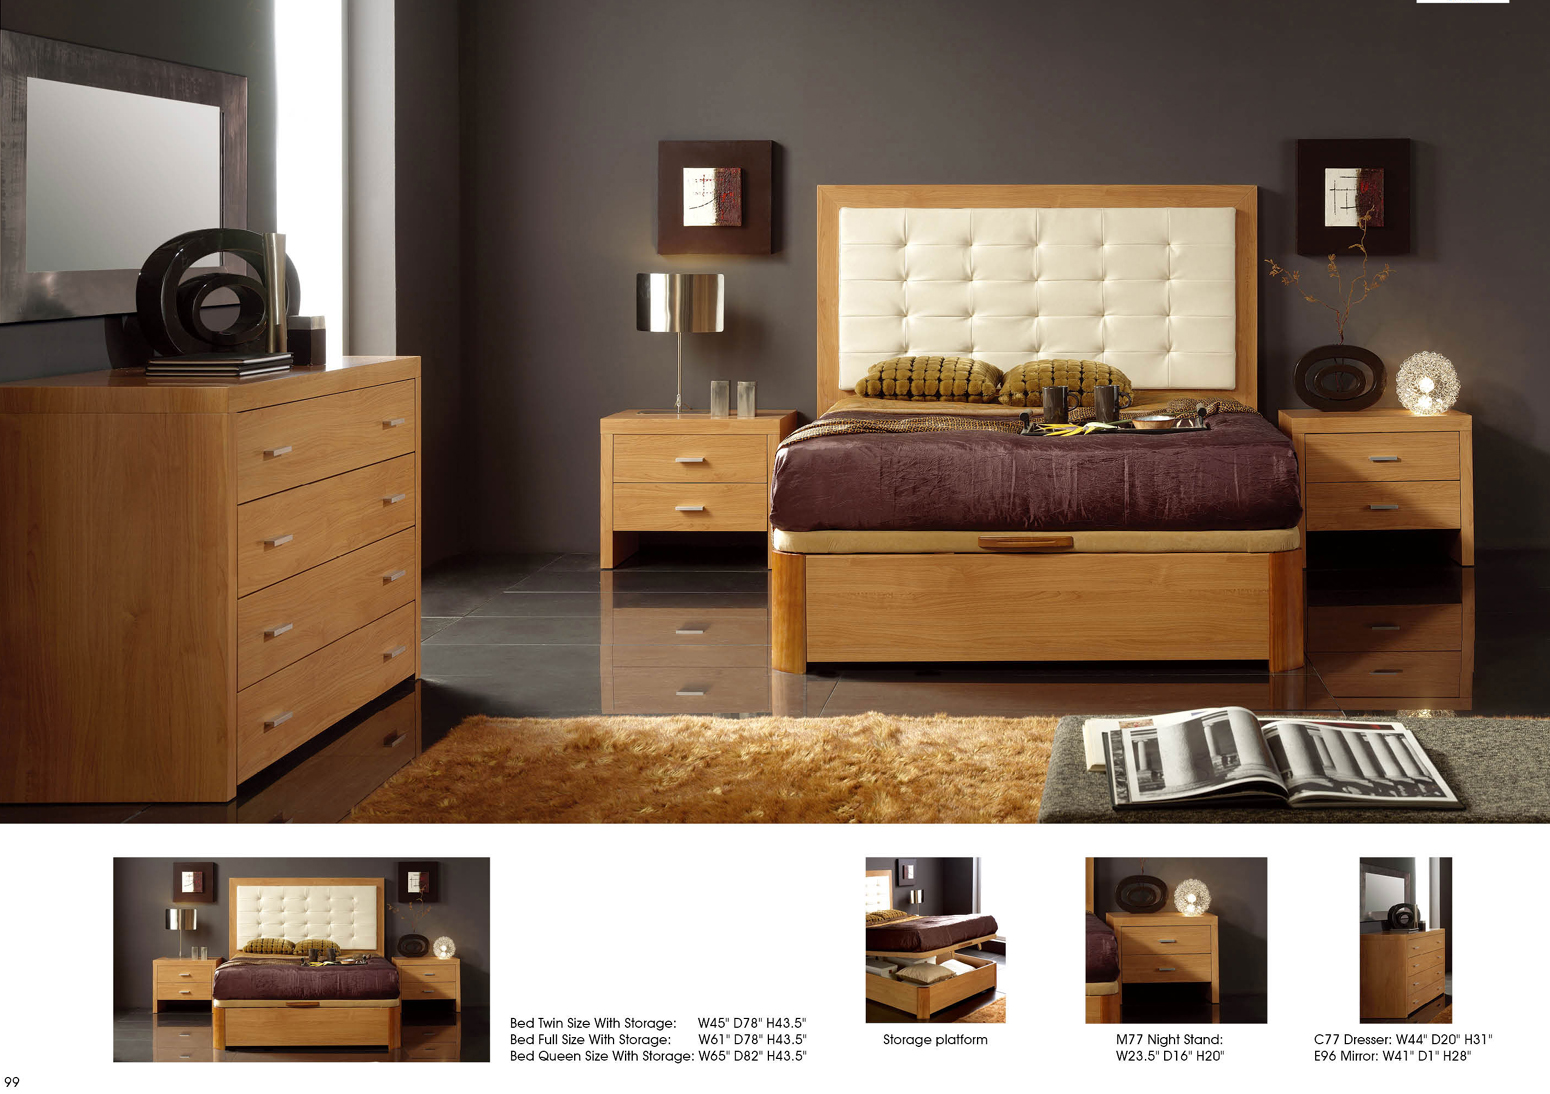 515 Alicante Cherry Bedroom Furniture Set, Dupen Spain - Italmoda ...